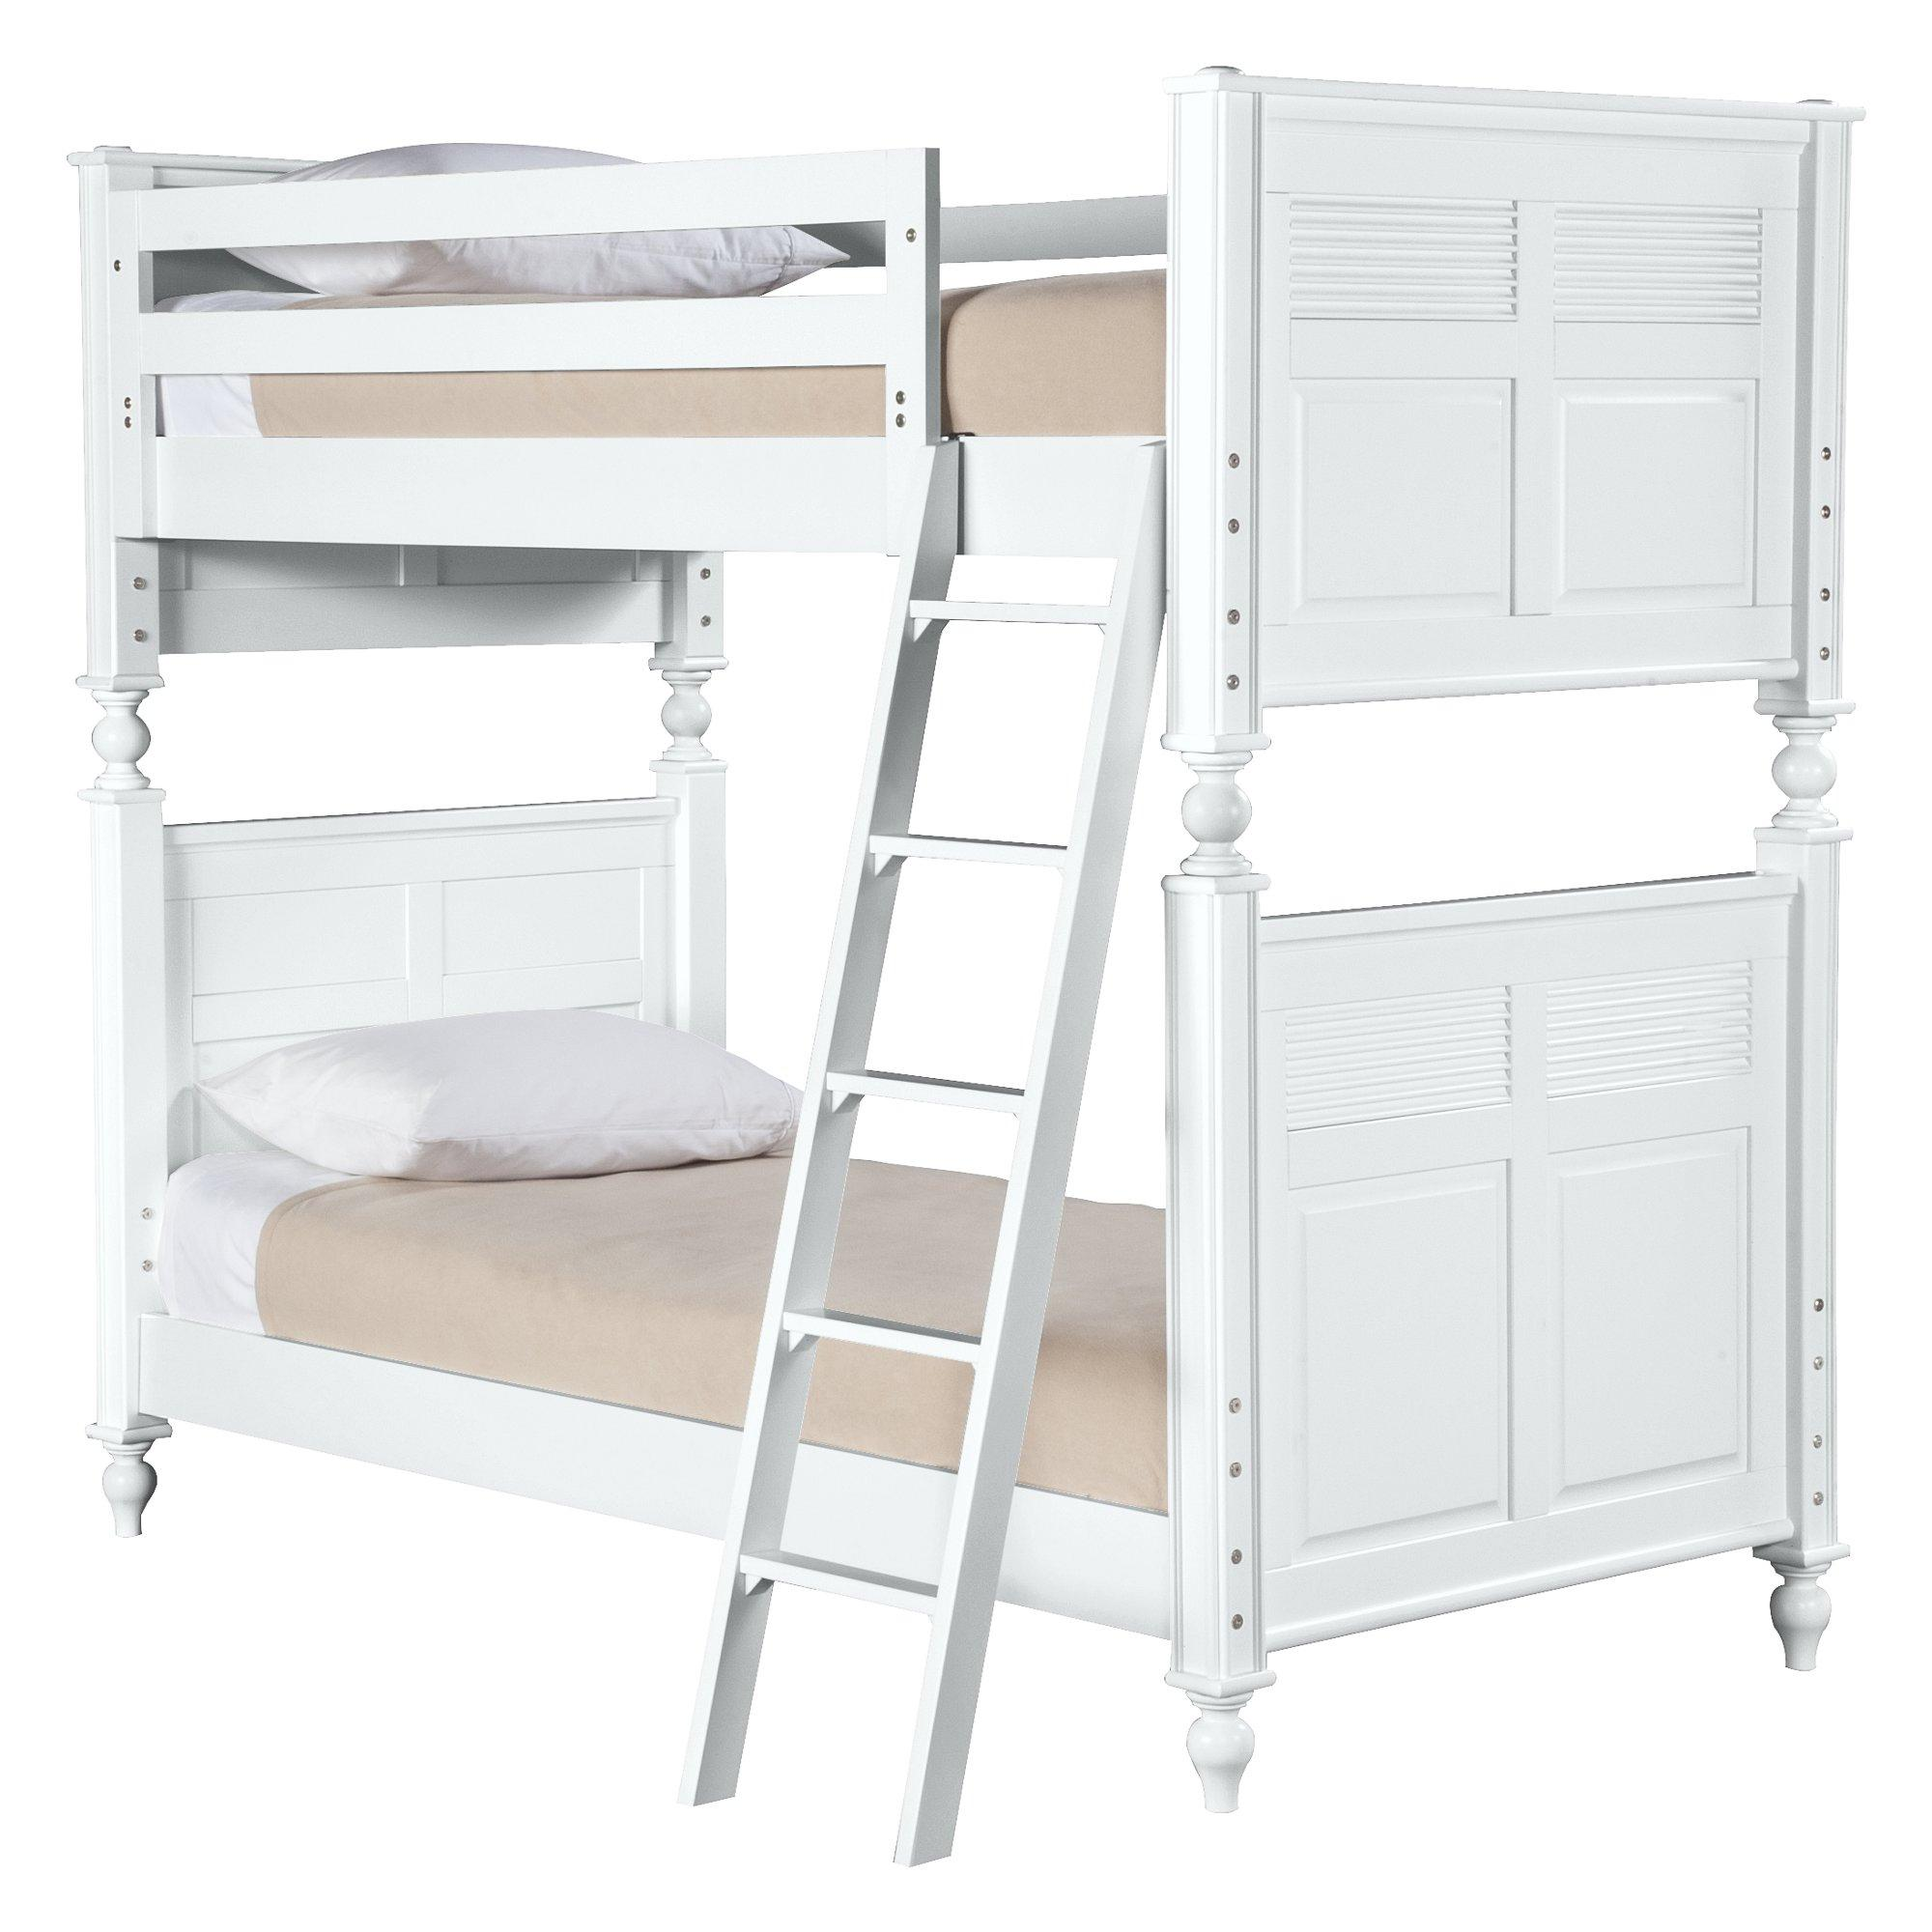 loft shop of furniture dimensions bed american bunk futon cletis youth beds twin america over